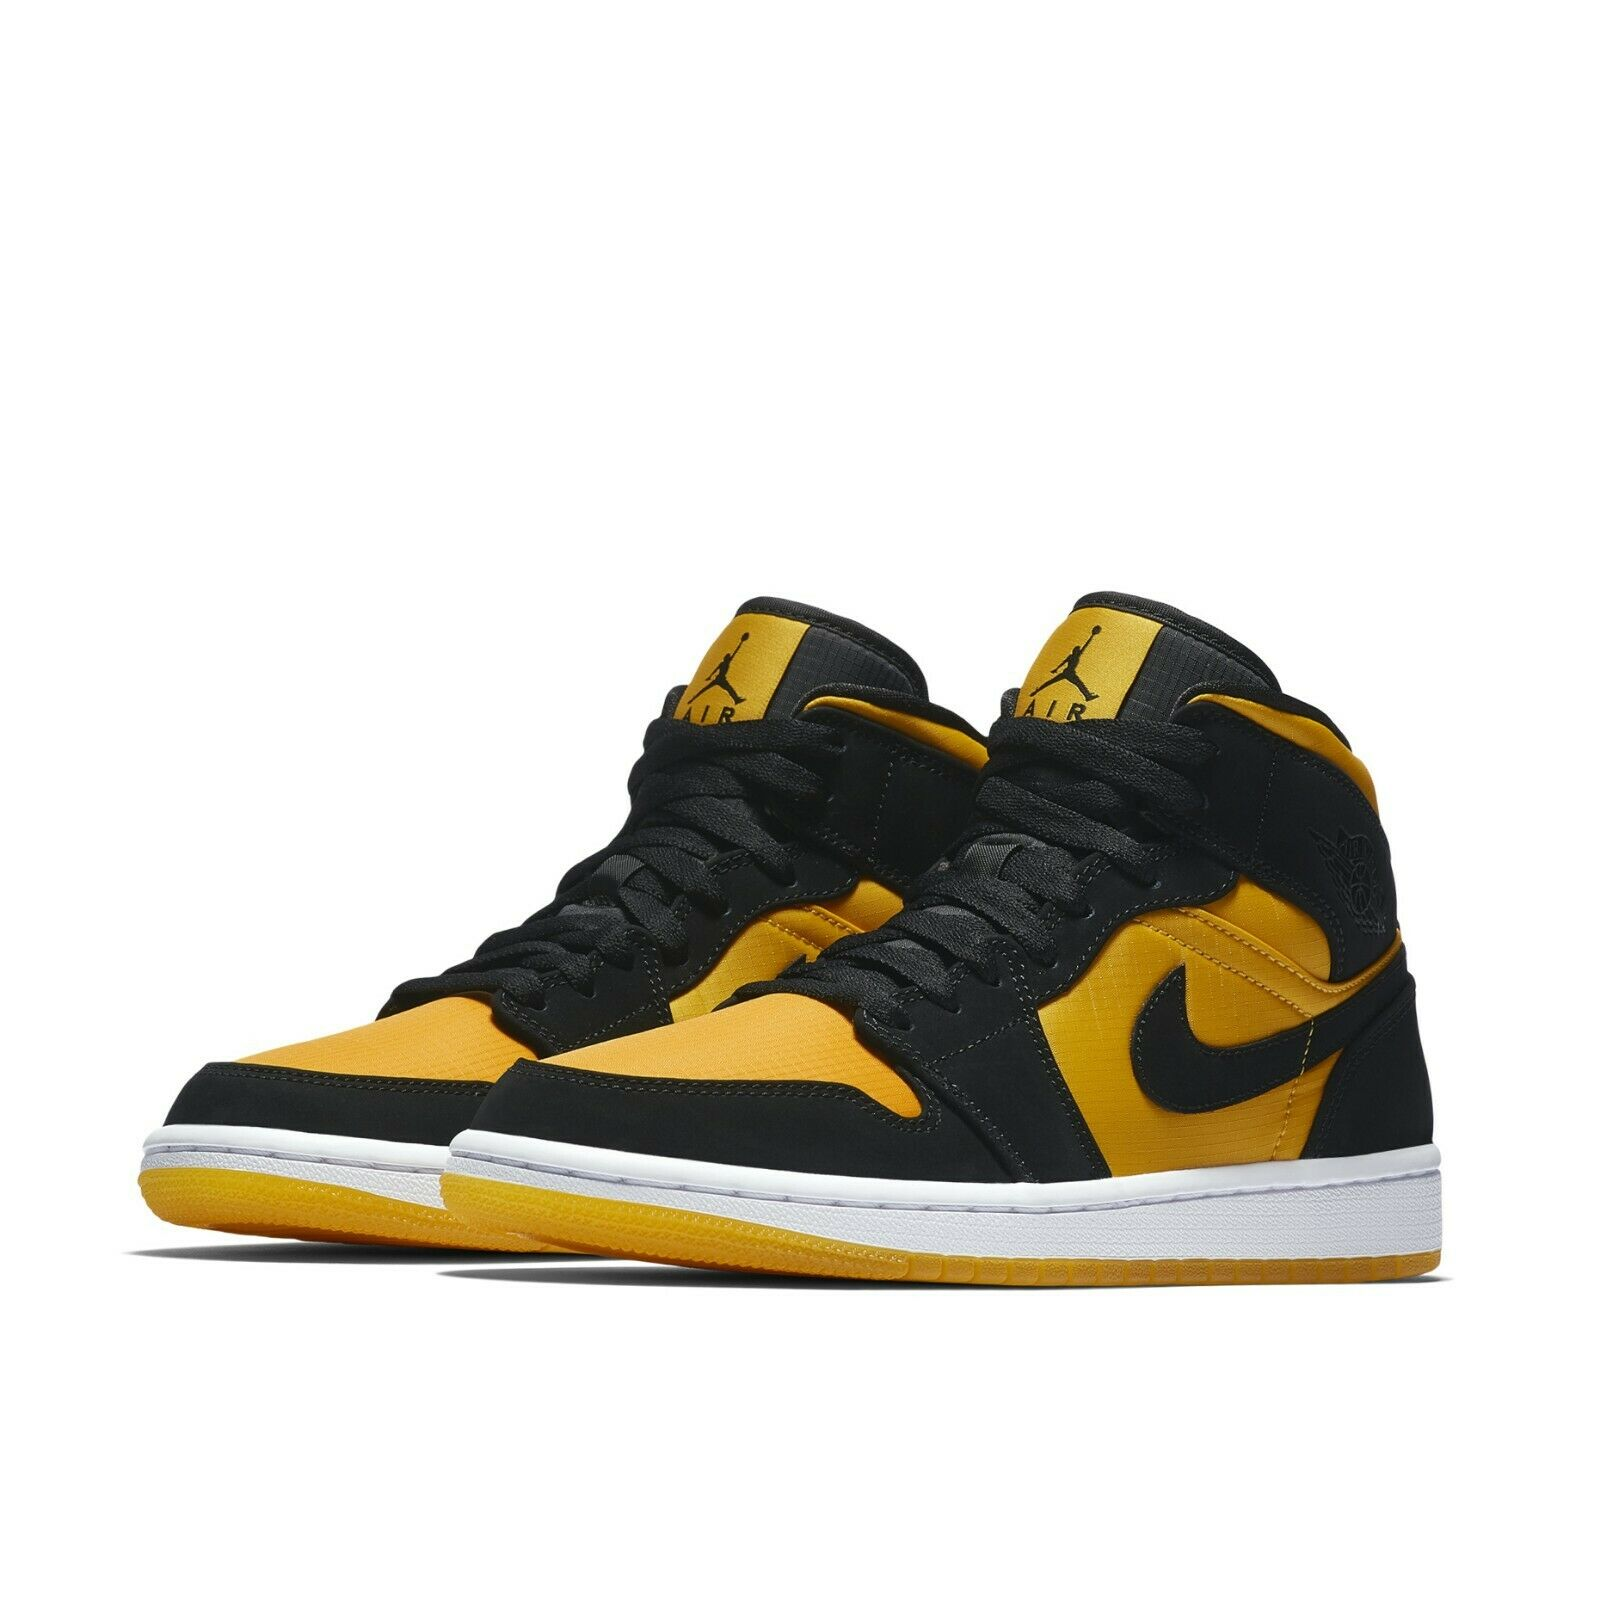 best service 2b0af 674c9 Details about Nike Air Jordan 1 Mid SE GC University Gold Black Yellow Taxi  AJ1 CD6759-007